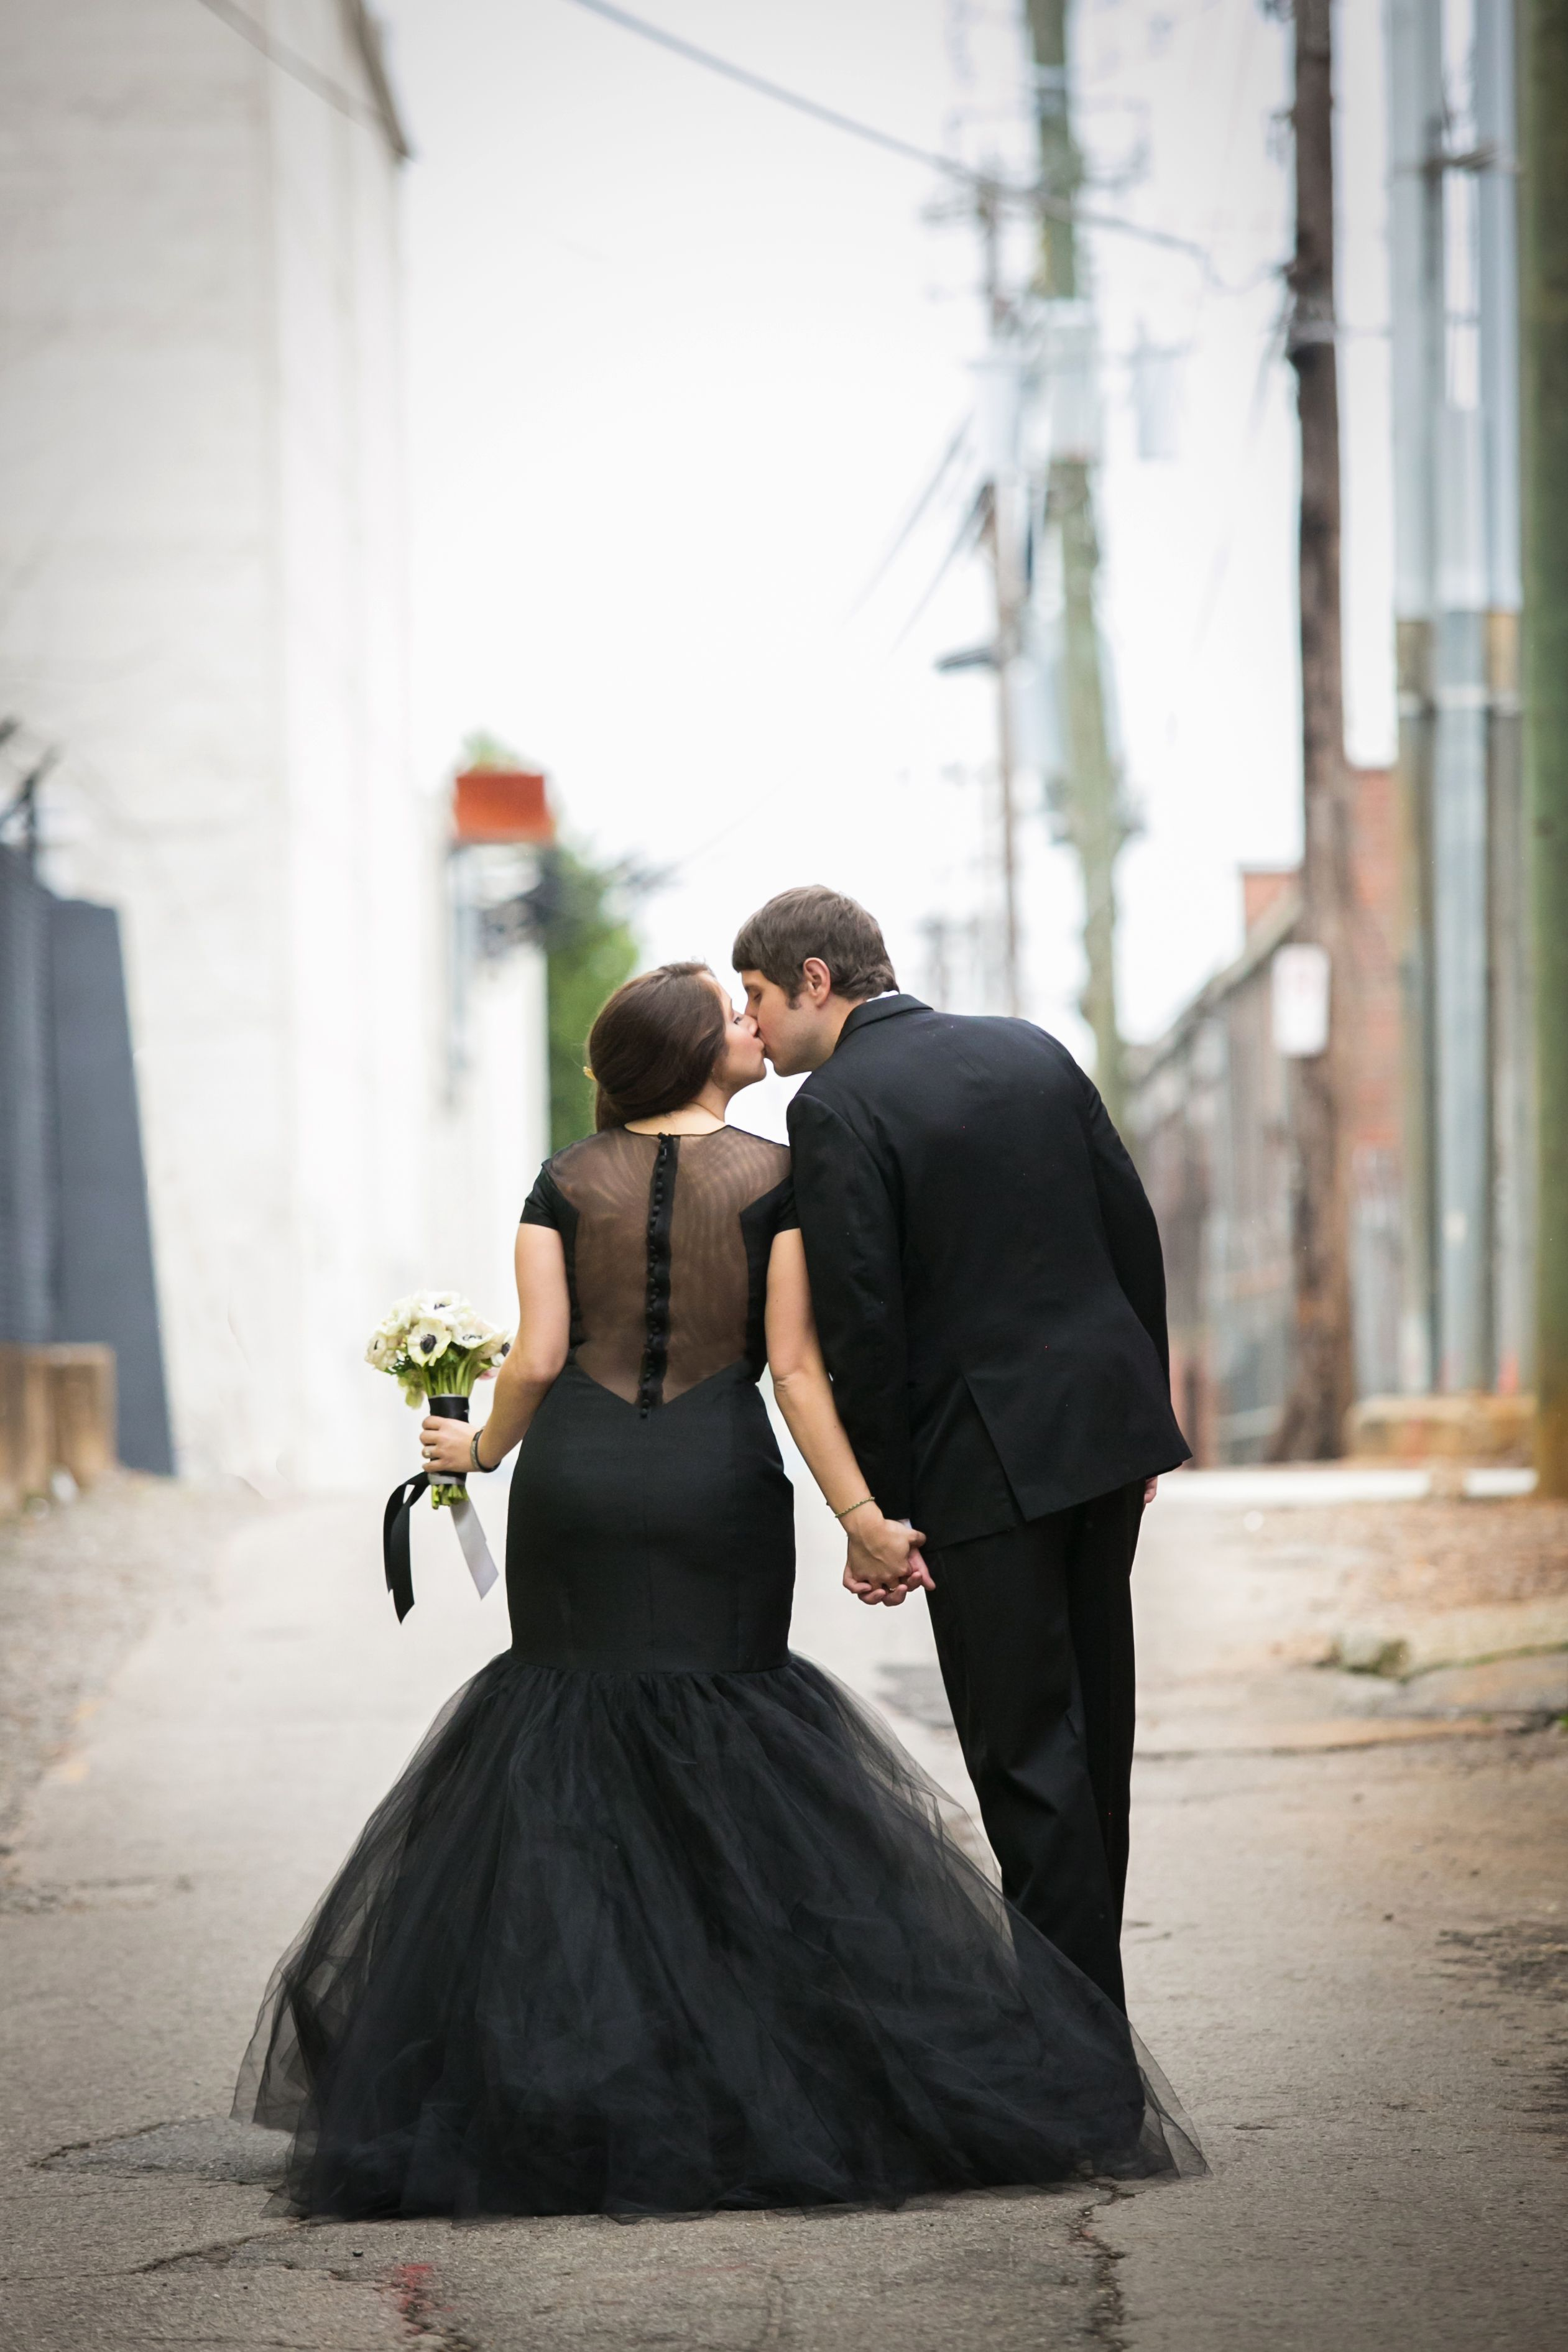 Hey I Found My Black Wedding Dress On Pinterst Image Provided By The Bride Photo Cred Stunning Wedding Dresses Black Wedding Dresses Colored Wedding Dresses